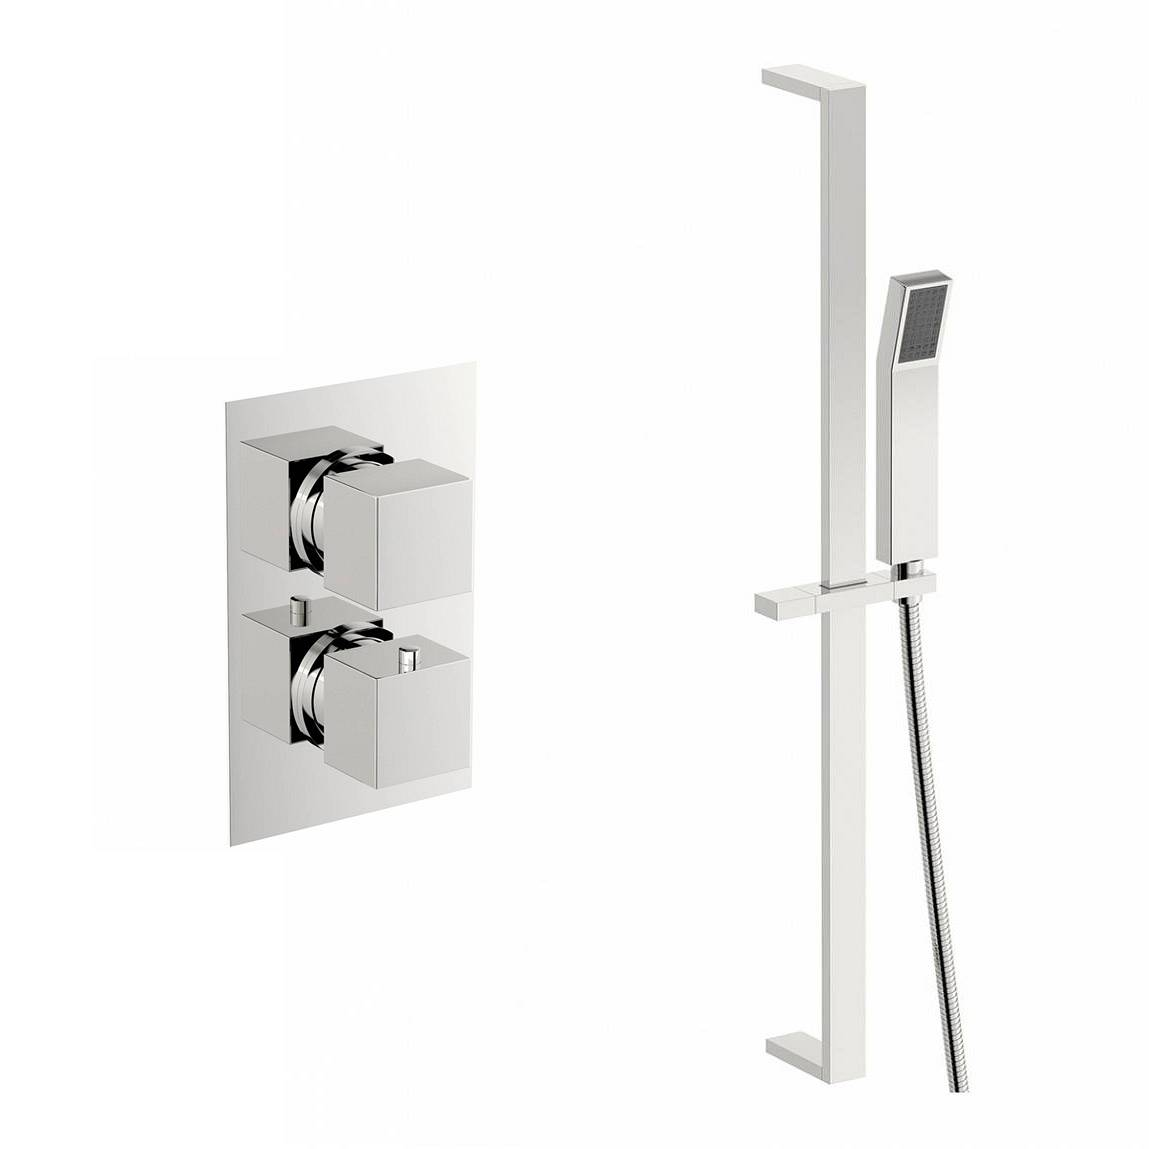 Image of Cubik Thermostatic Twin Valve and Riser Rail Set